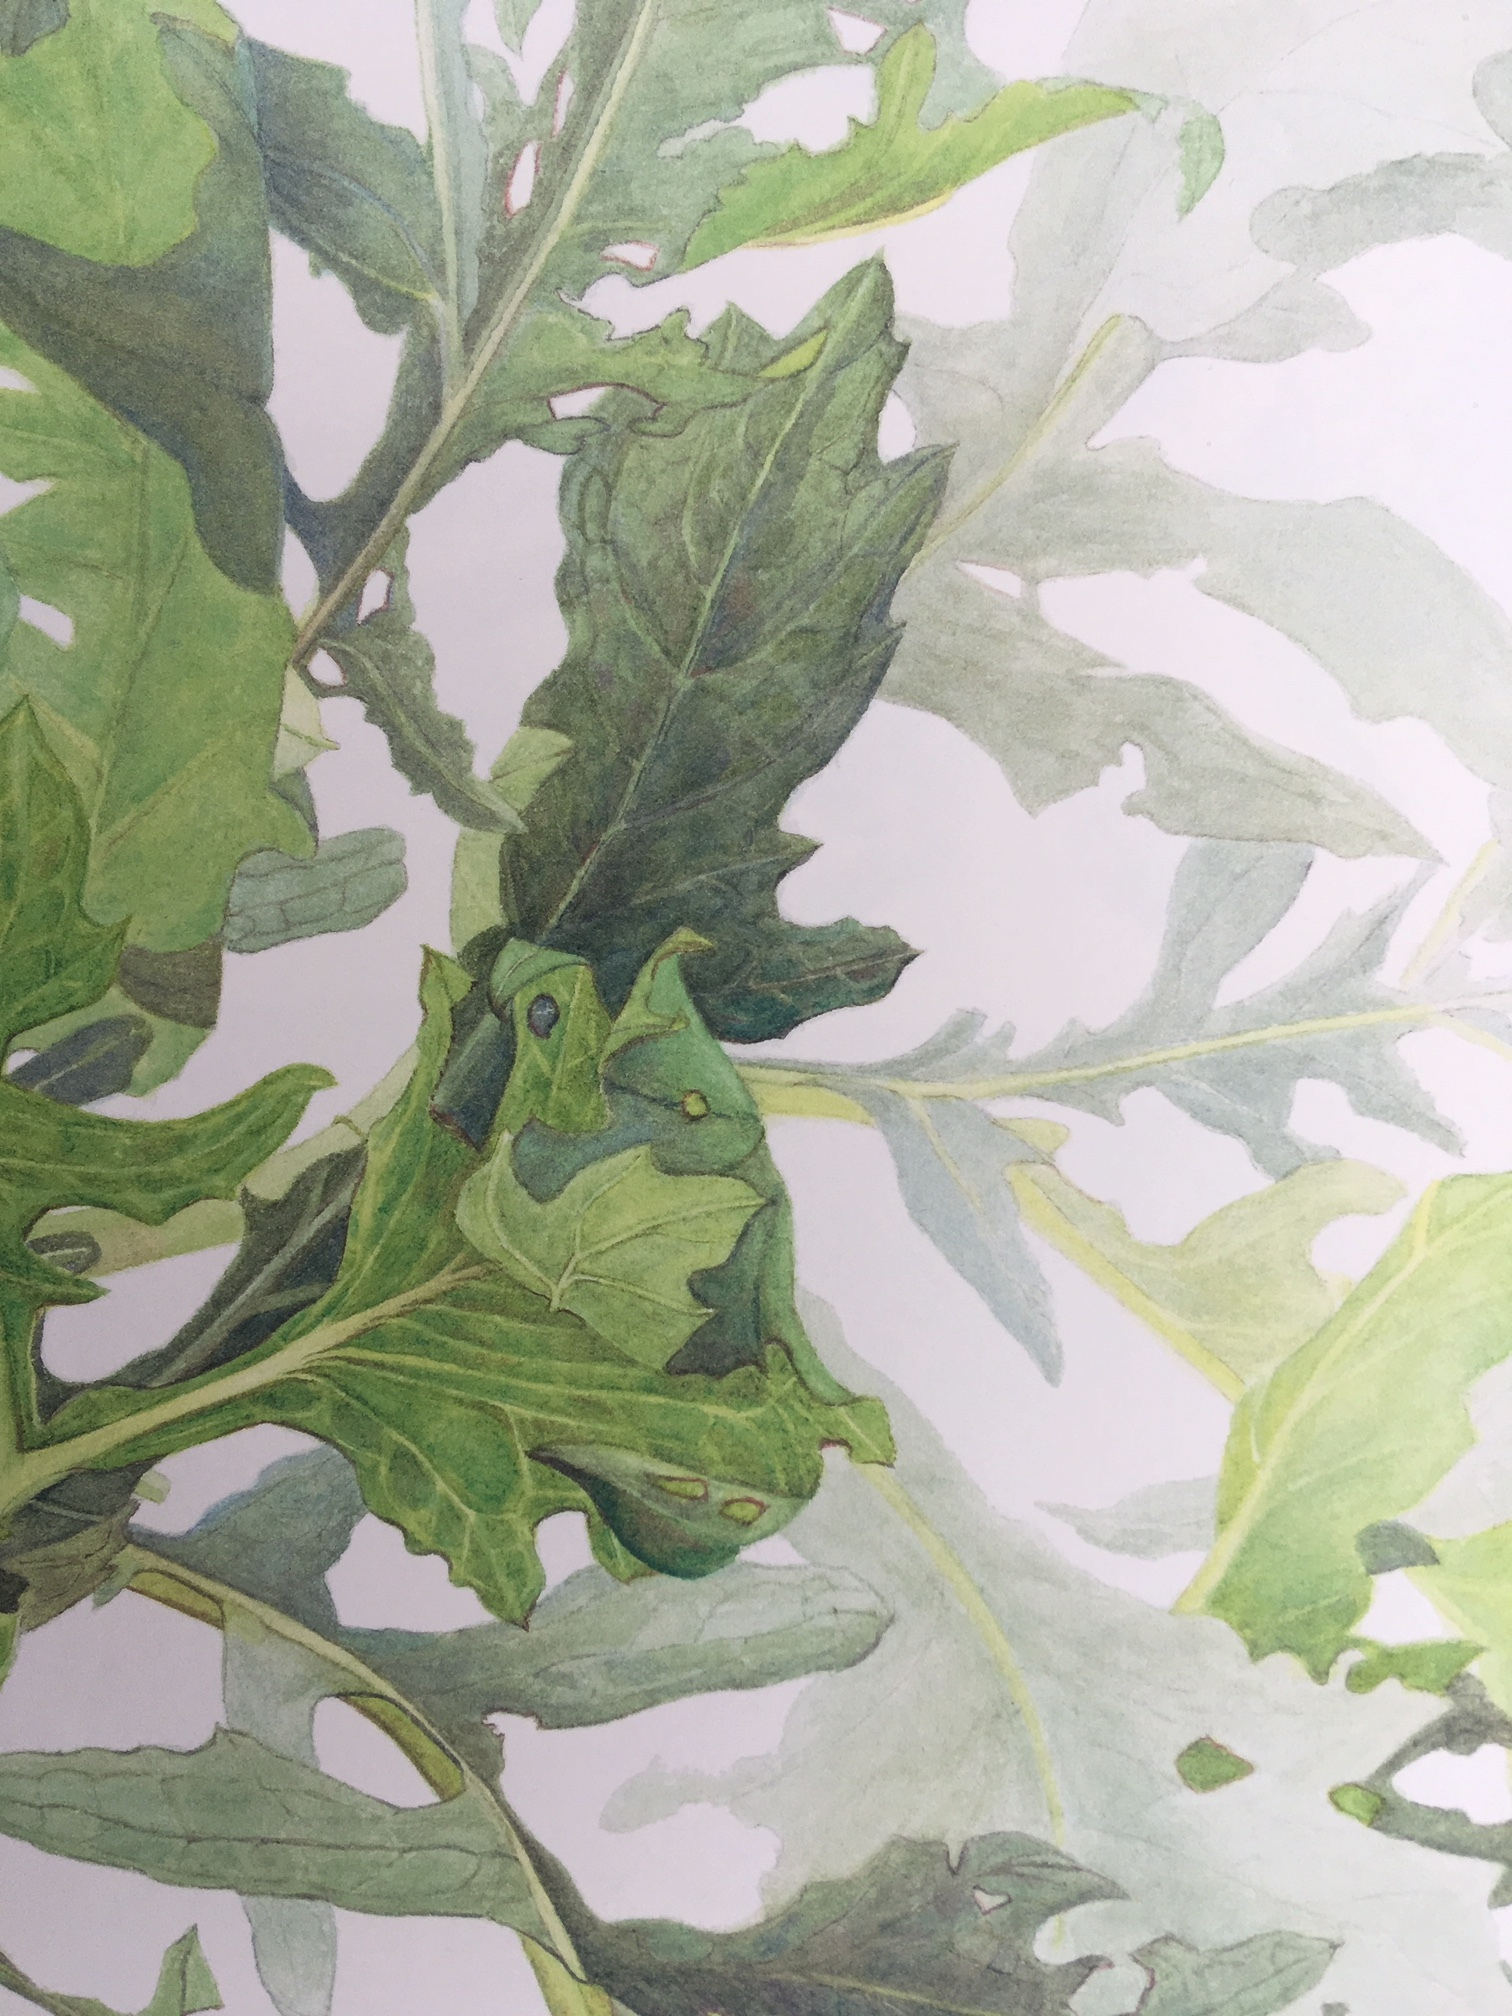 Details from Tartar Cabbage or Steppe Kale